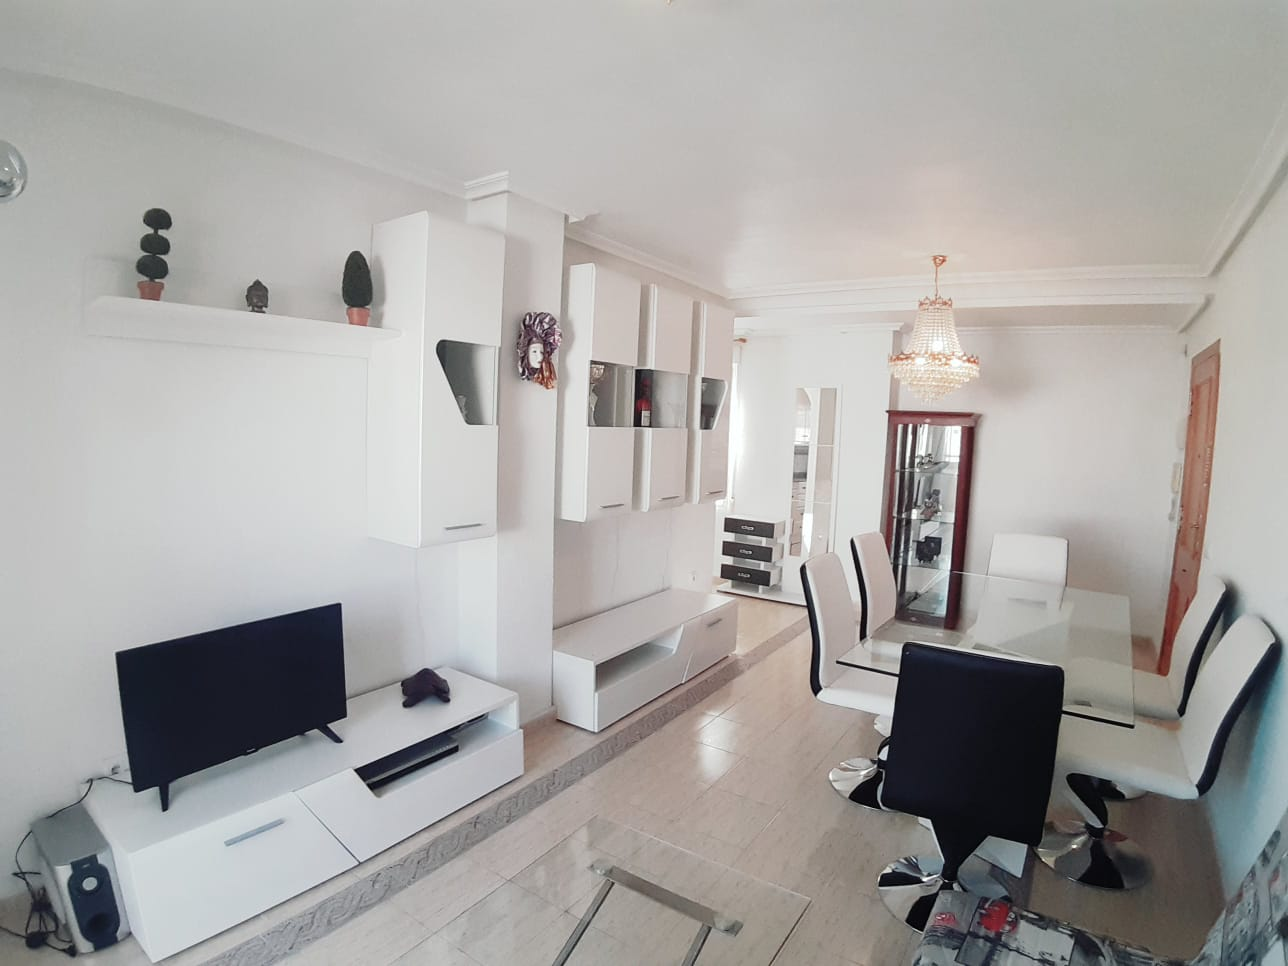 Nice Penthouse 150 meters from the beach La Mata, Torrevieja € 129,900